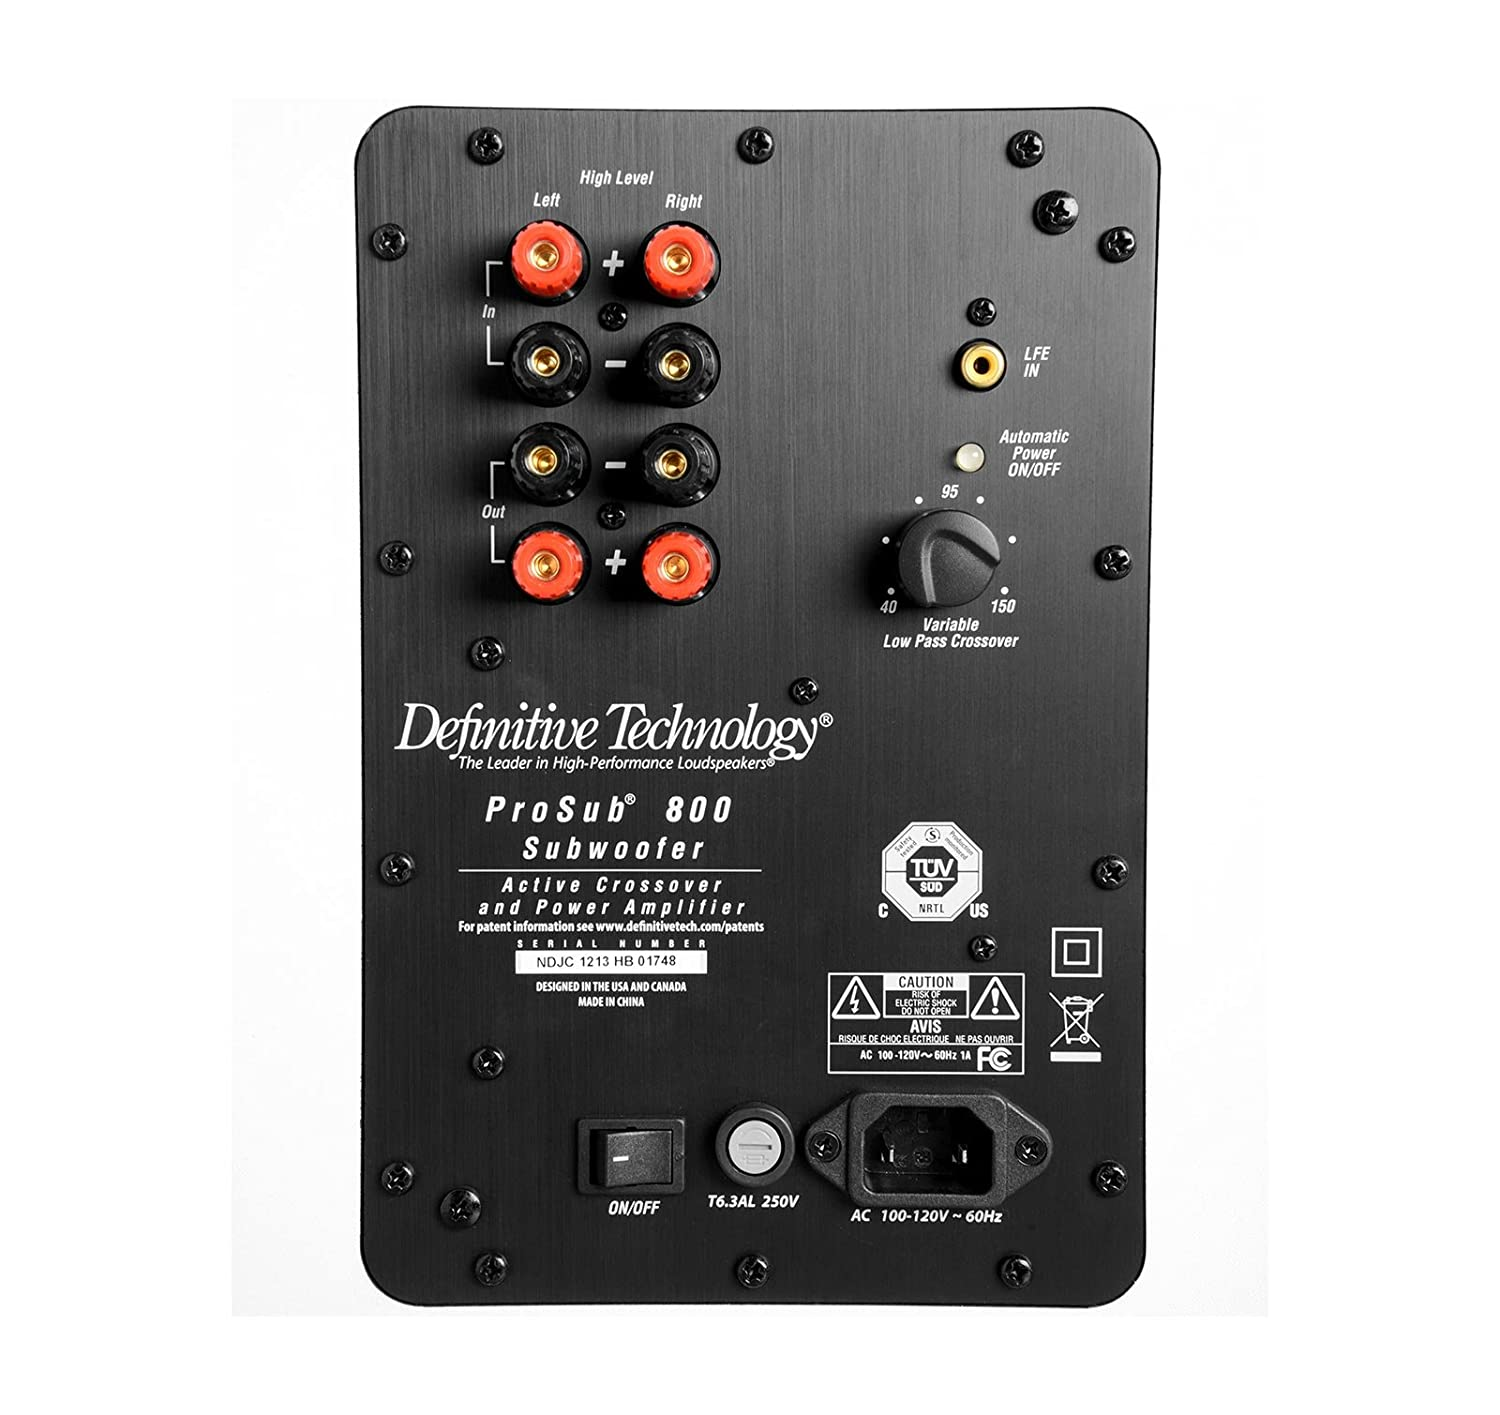 Definitive Technology Prosub 800 120v Speaker Single Circuit Was Designed For The Purpose Of Creating An Active Crossover Black Home Audio Theater